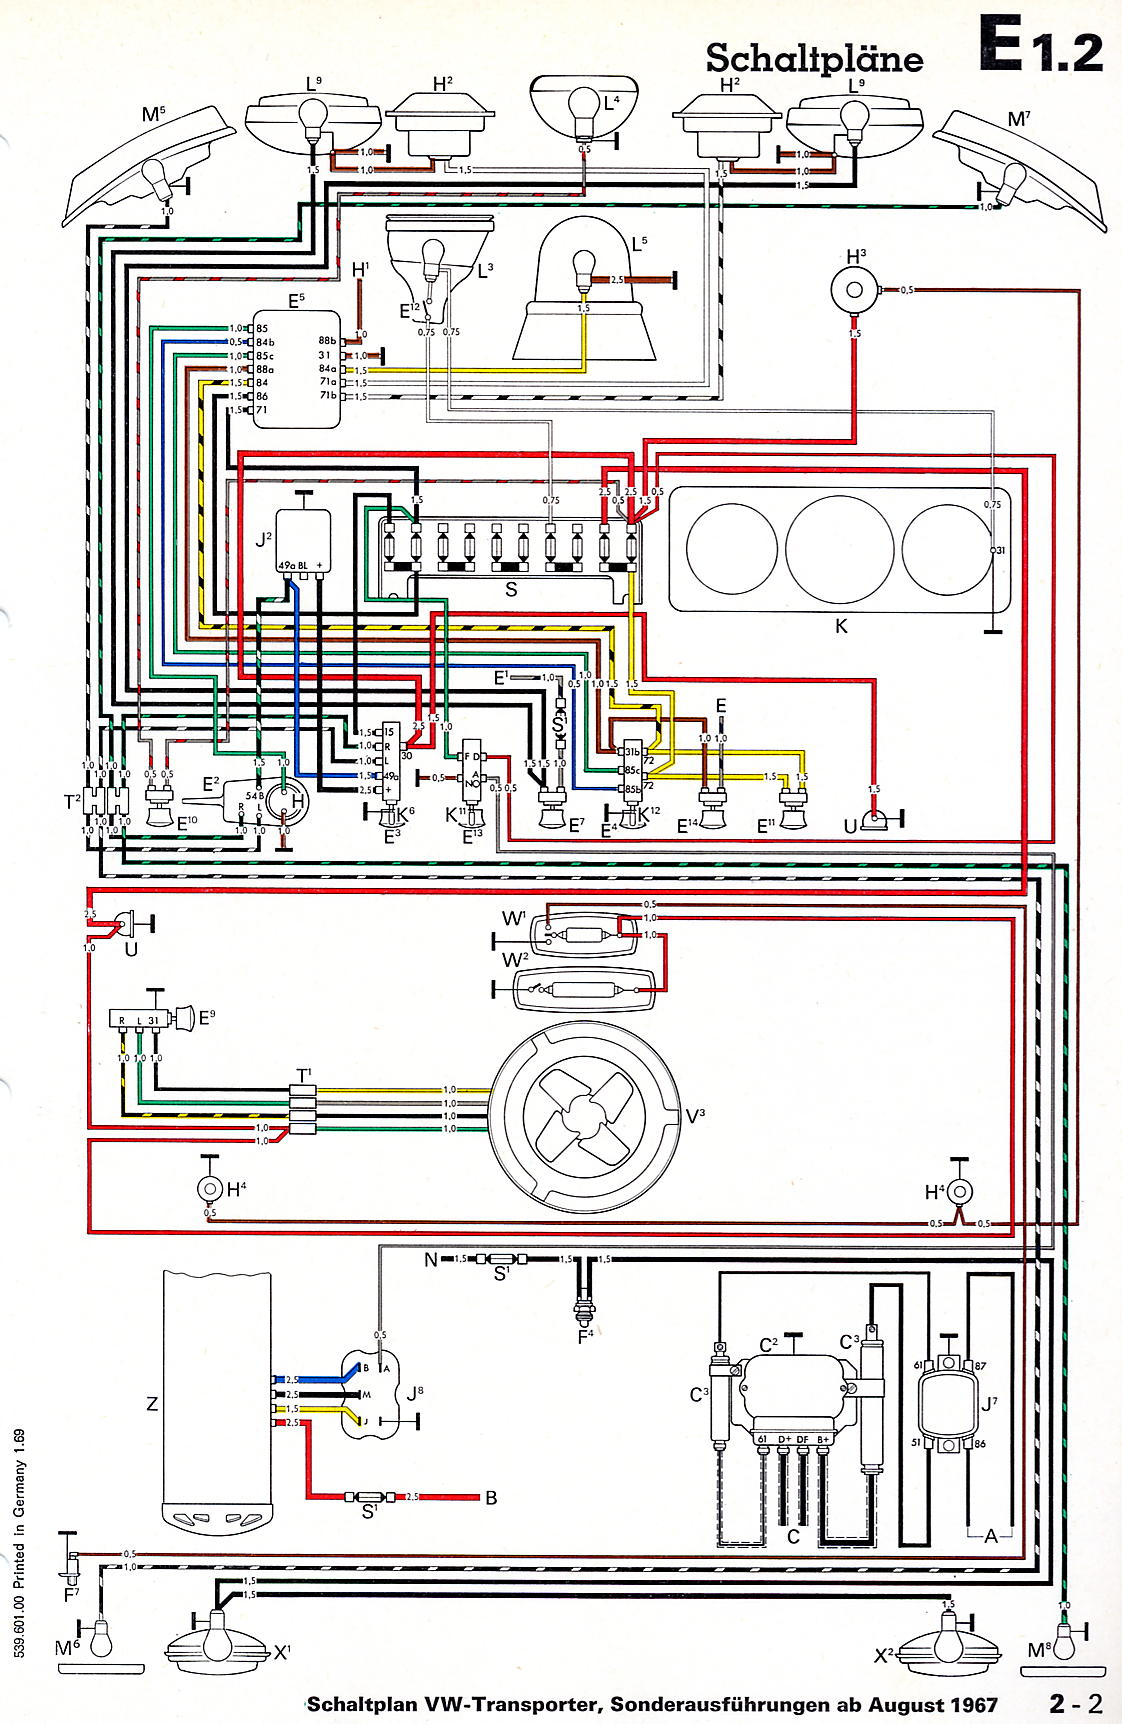 84 Vw Jetta Wiring Diagram Schematics For 2002 Volkswagen Beetle Free Download Data Engine 1989